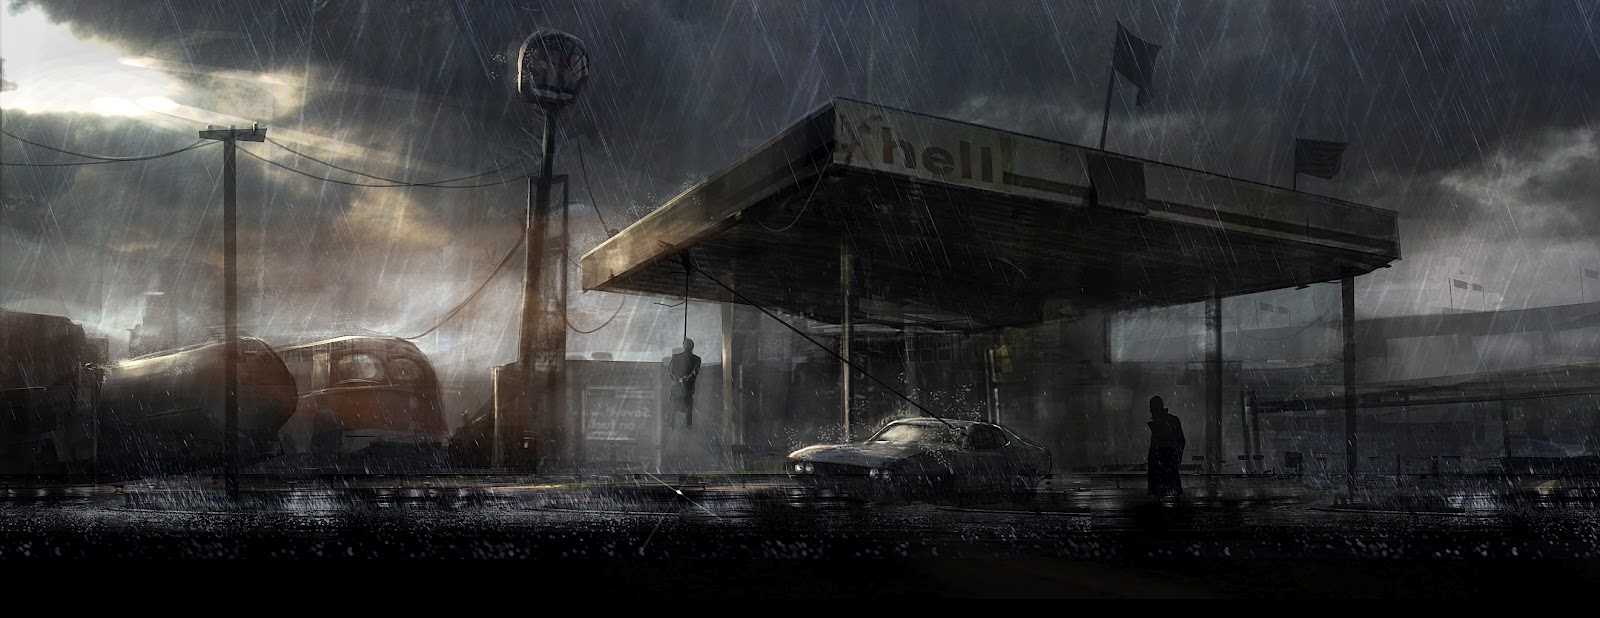 Petrol Station by cesarsampedro